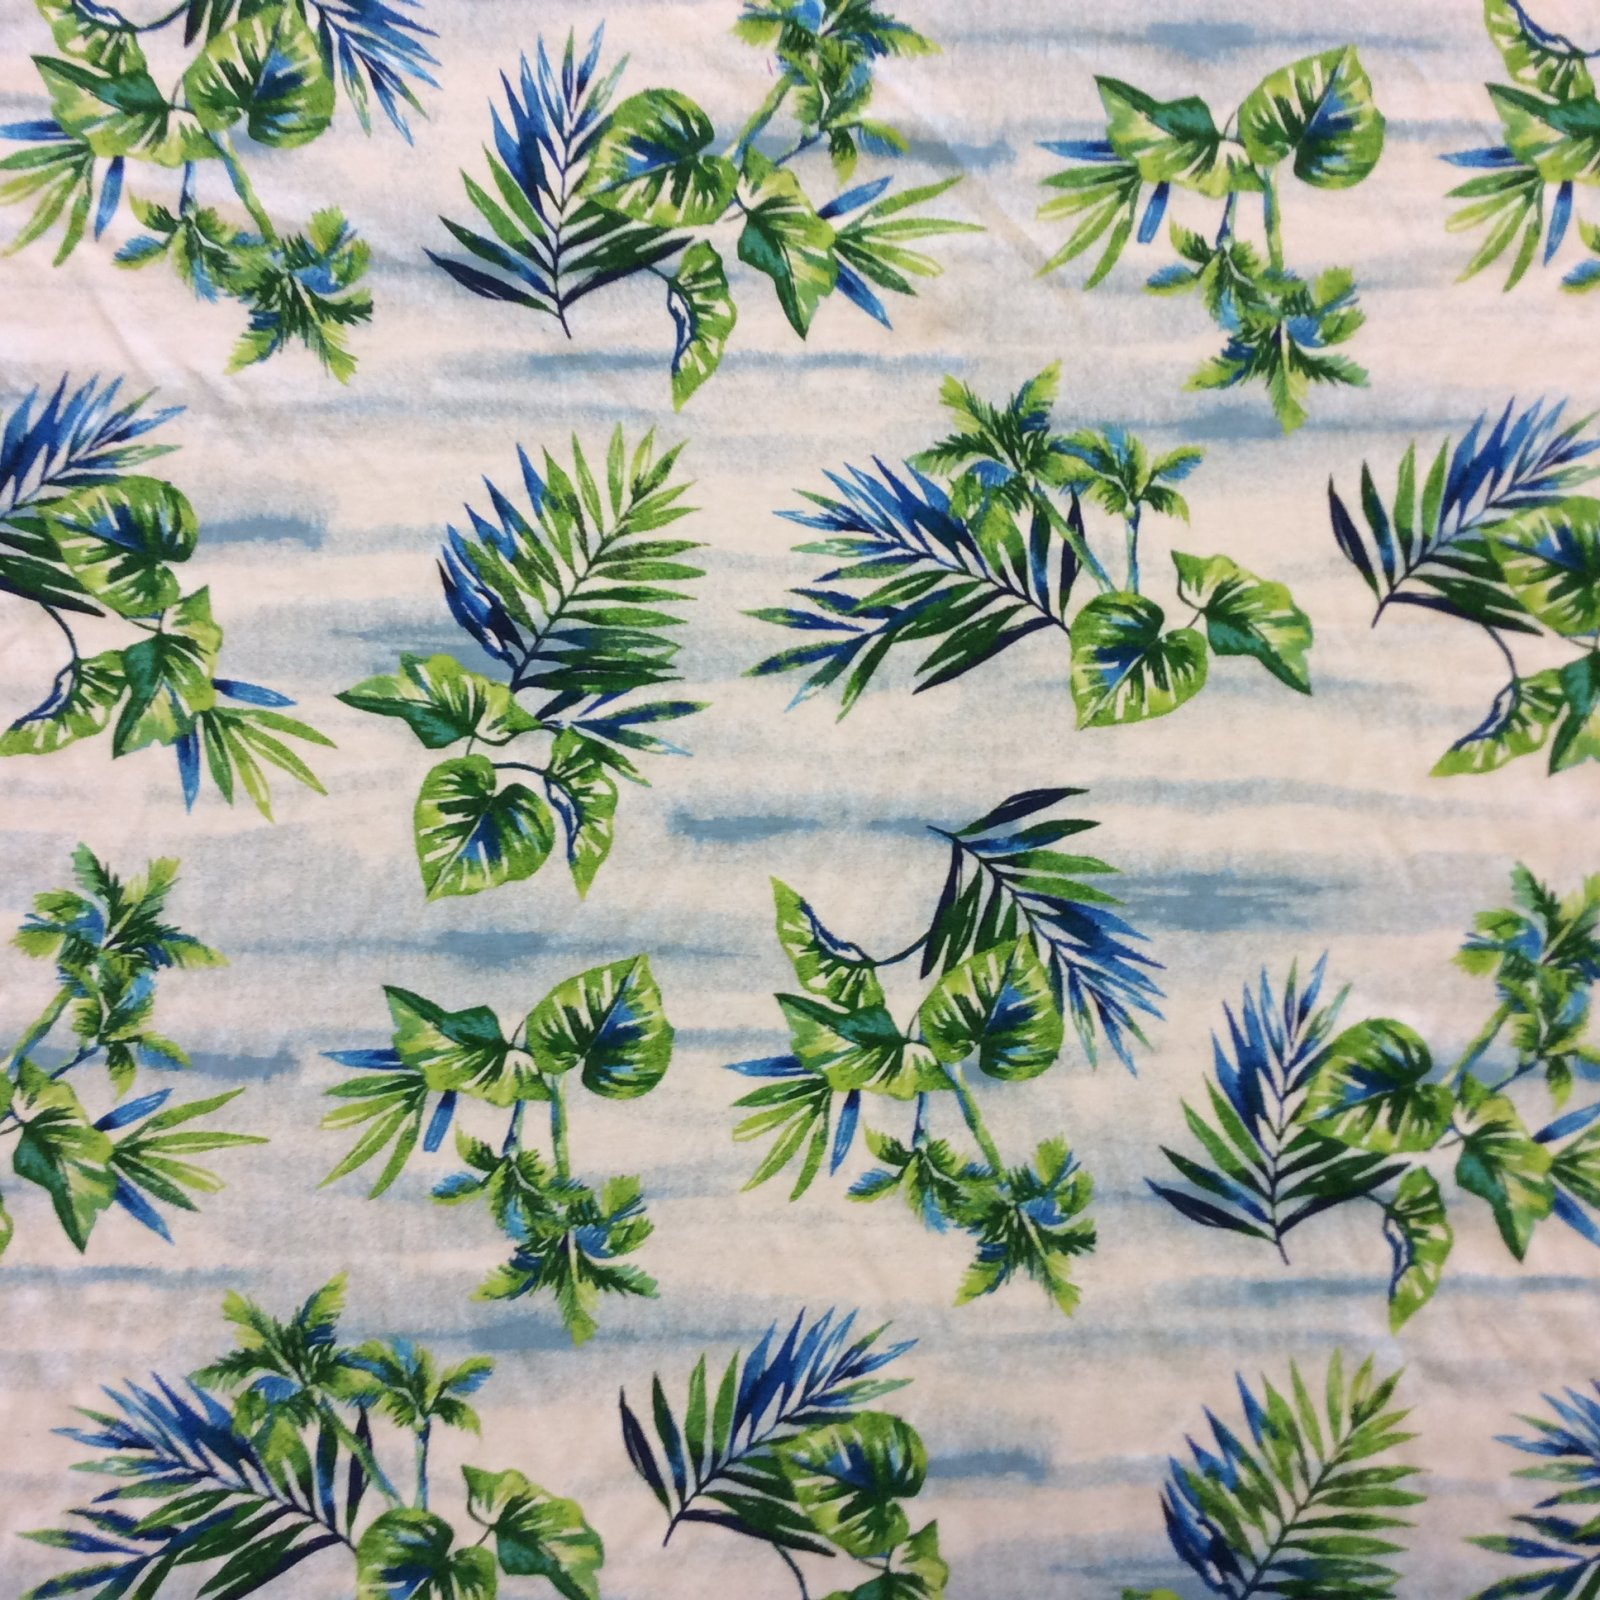 Knit Fabric Tropical Palm Beach Wave Cotton Blend Non-Directional Mid Weight Apparel Sewing Stretch Dressmakers Fabric MAY402